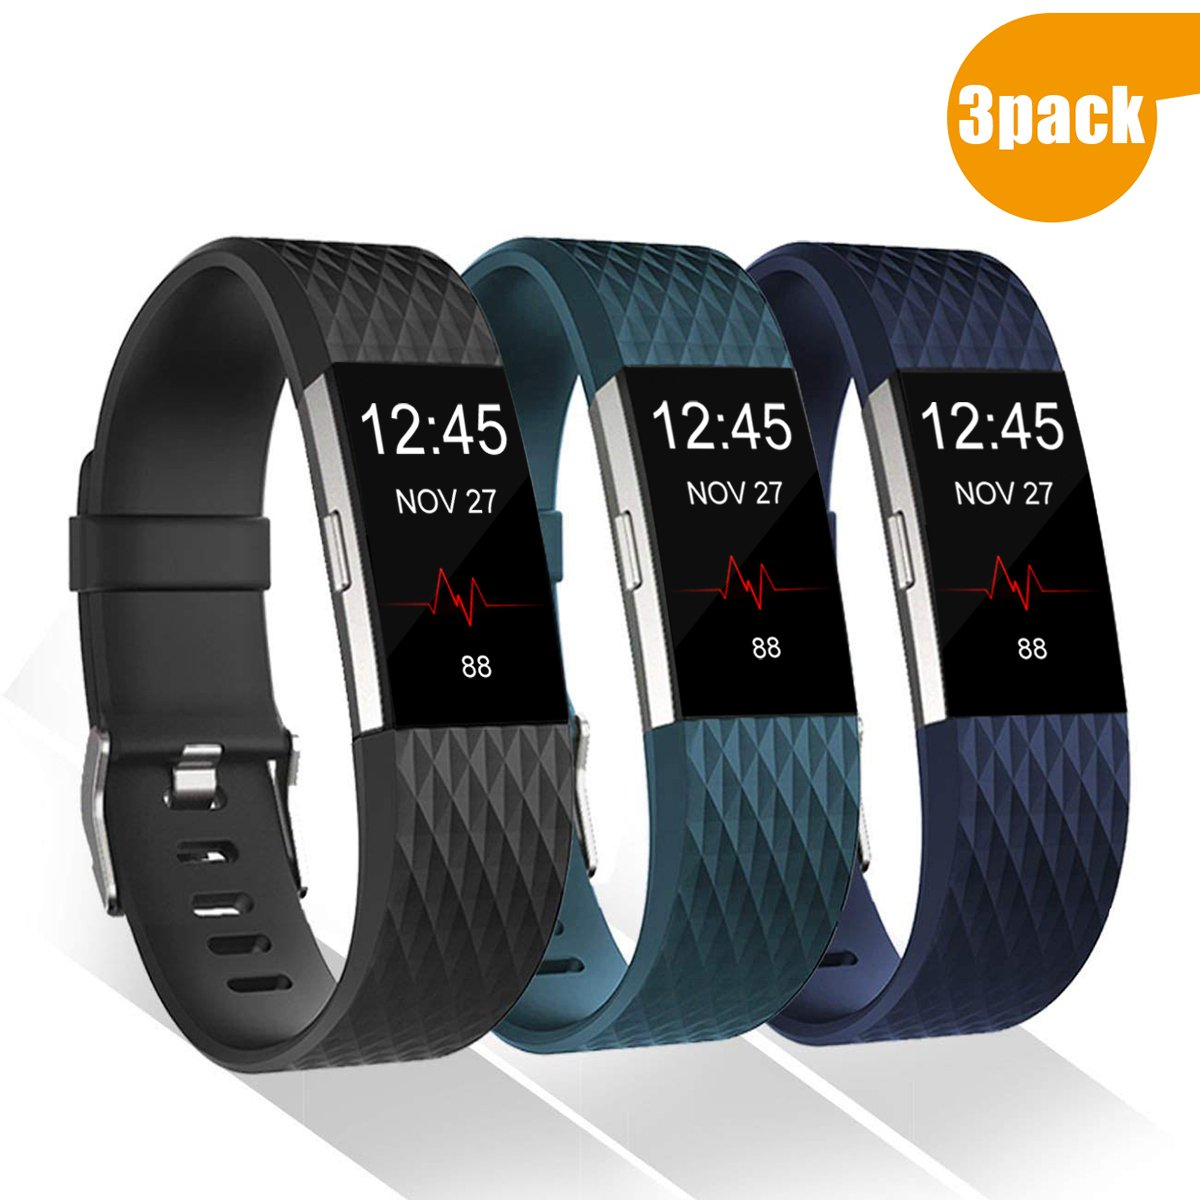 Geak Fitbit Charge 2バンド、交換アクセサリーバンドfor Fitbit Charge 2、クラシックリストバンド安全なシリコンファスナーメタルClasps for Fitbit Charge 2 B0791BYL4K Small|#Diamond-3Pack (Black, Slate, Navy Blue) #Diamond-3Pack (Black, Slate, Navy Blue) Small